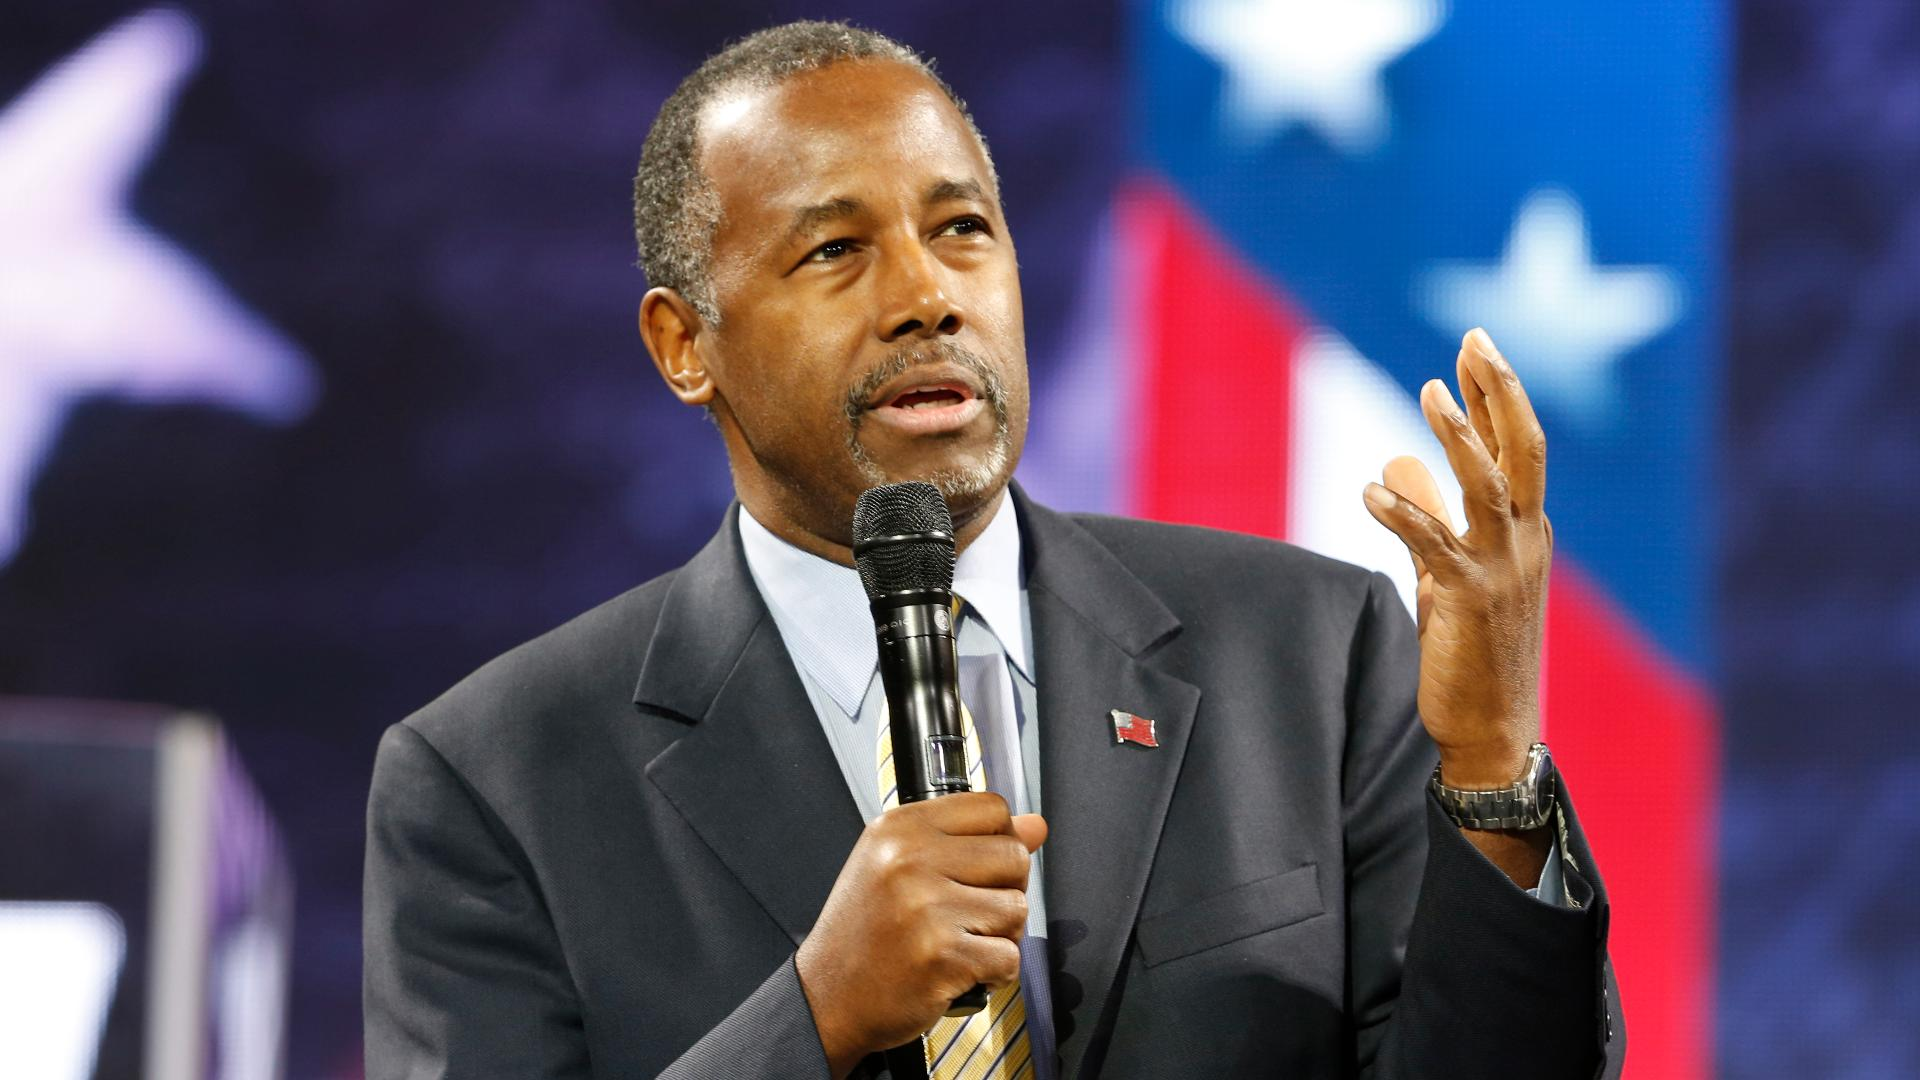 Ben Carson to tell supporters he sees no 'path forward' for campaign